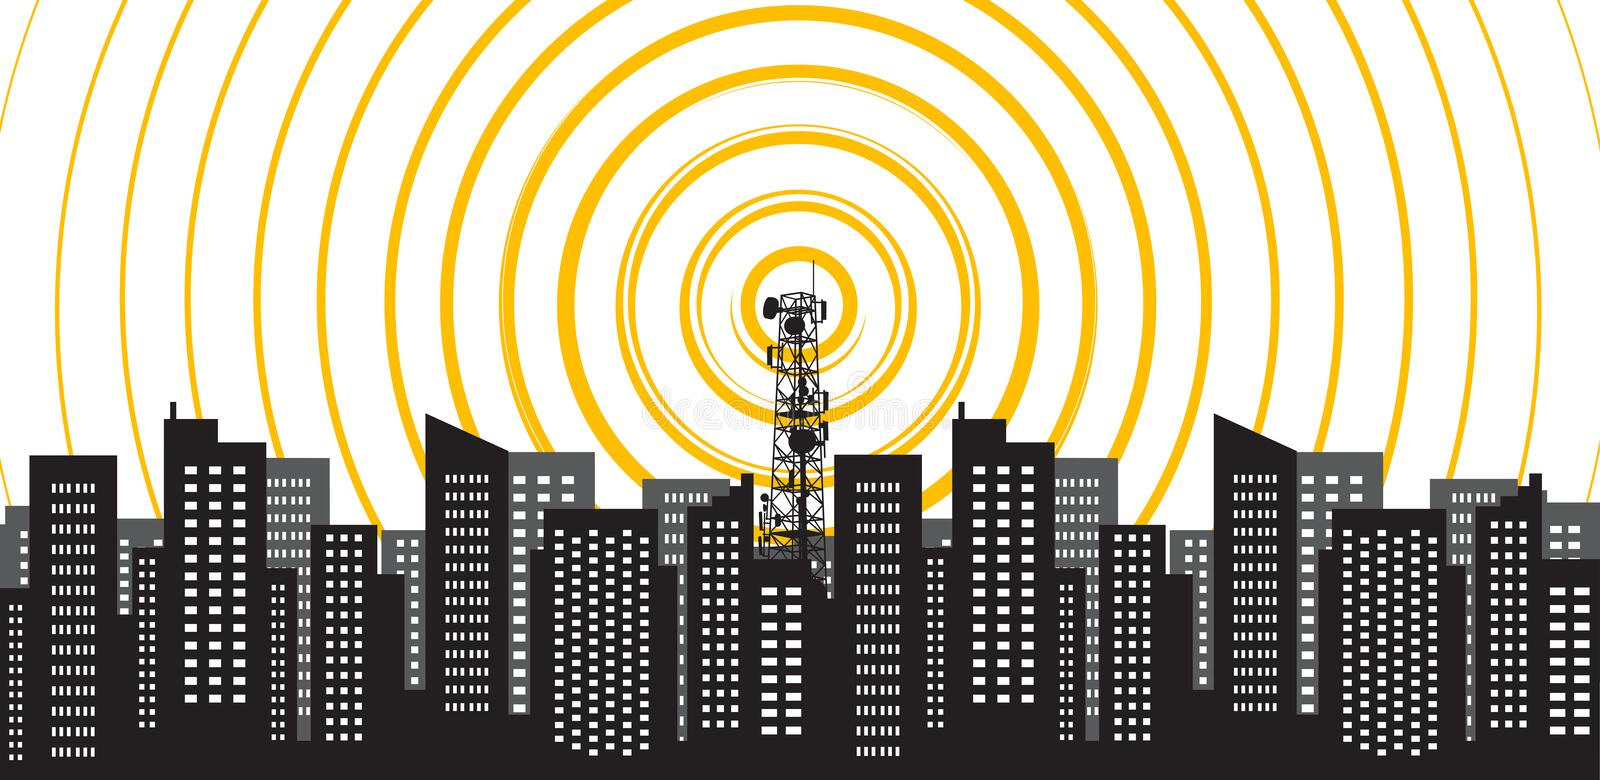 Radio tower irradiate the city. Tower transmitter 5G. Vector illustration royalty free stock image